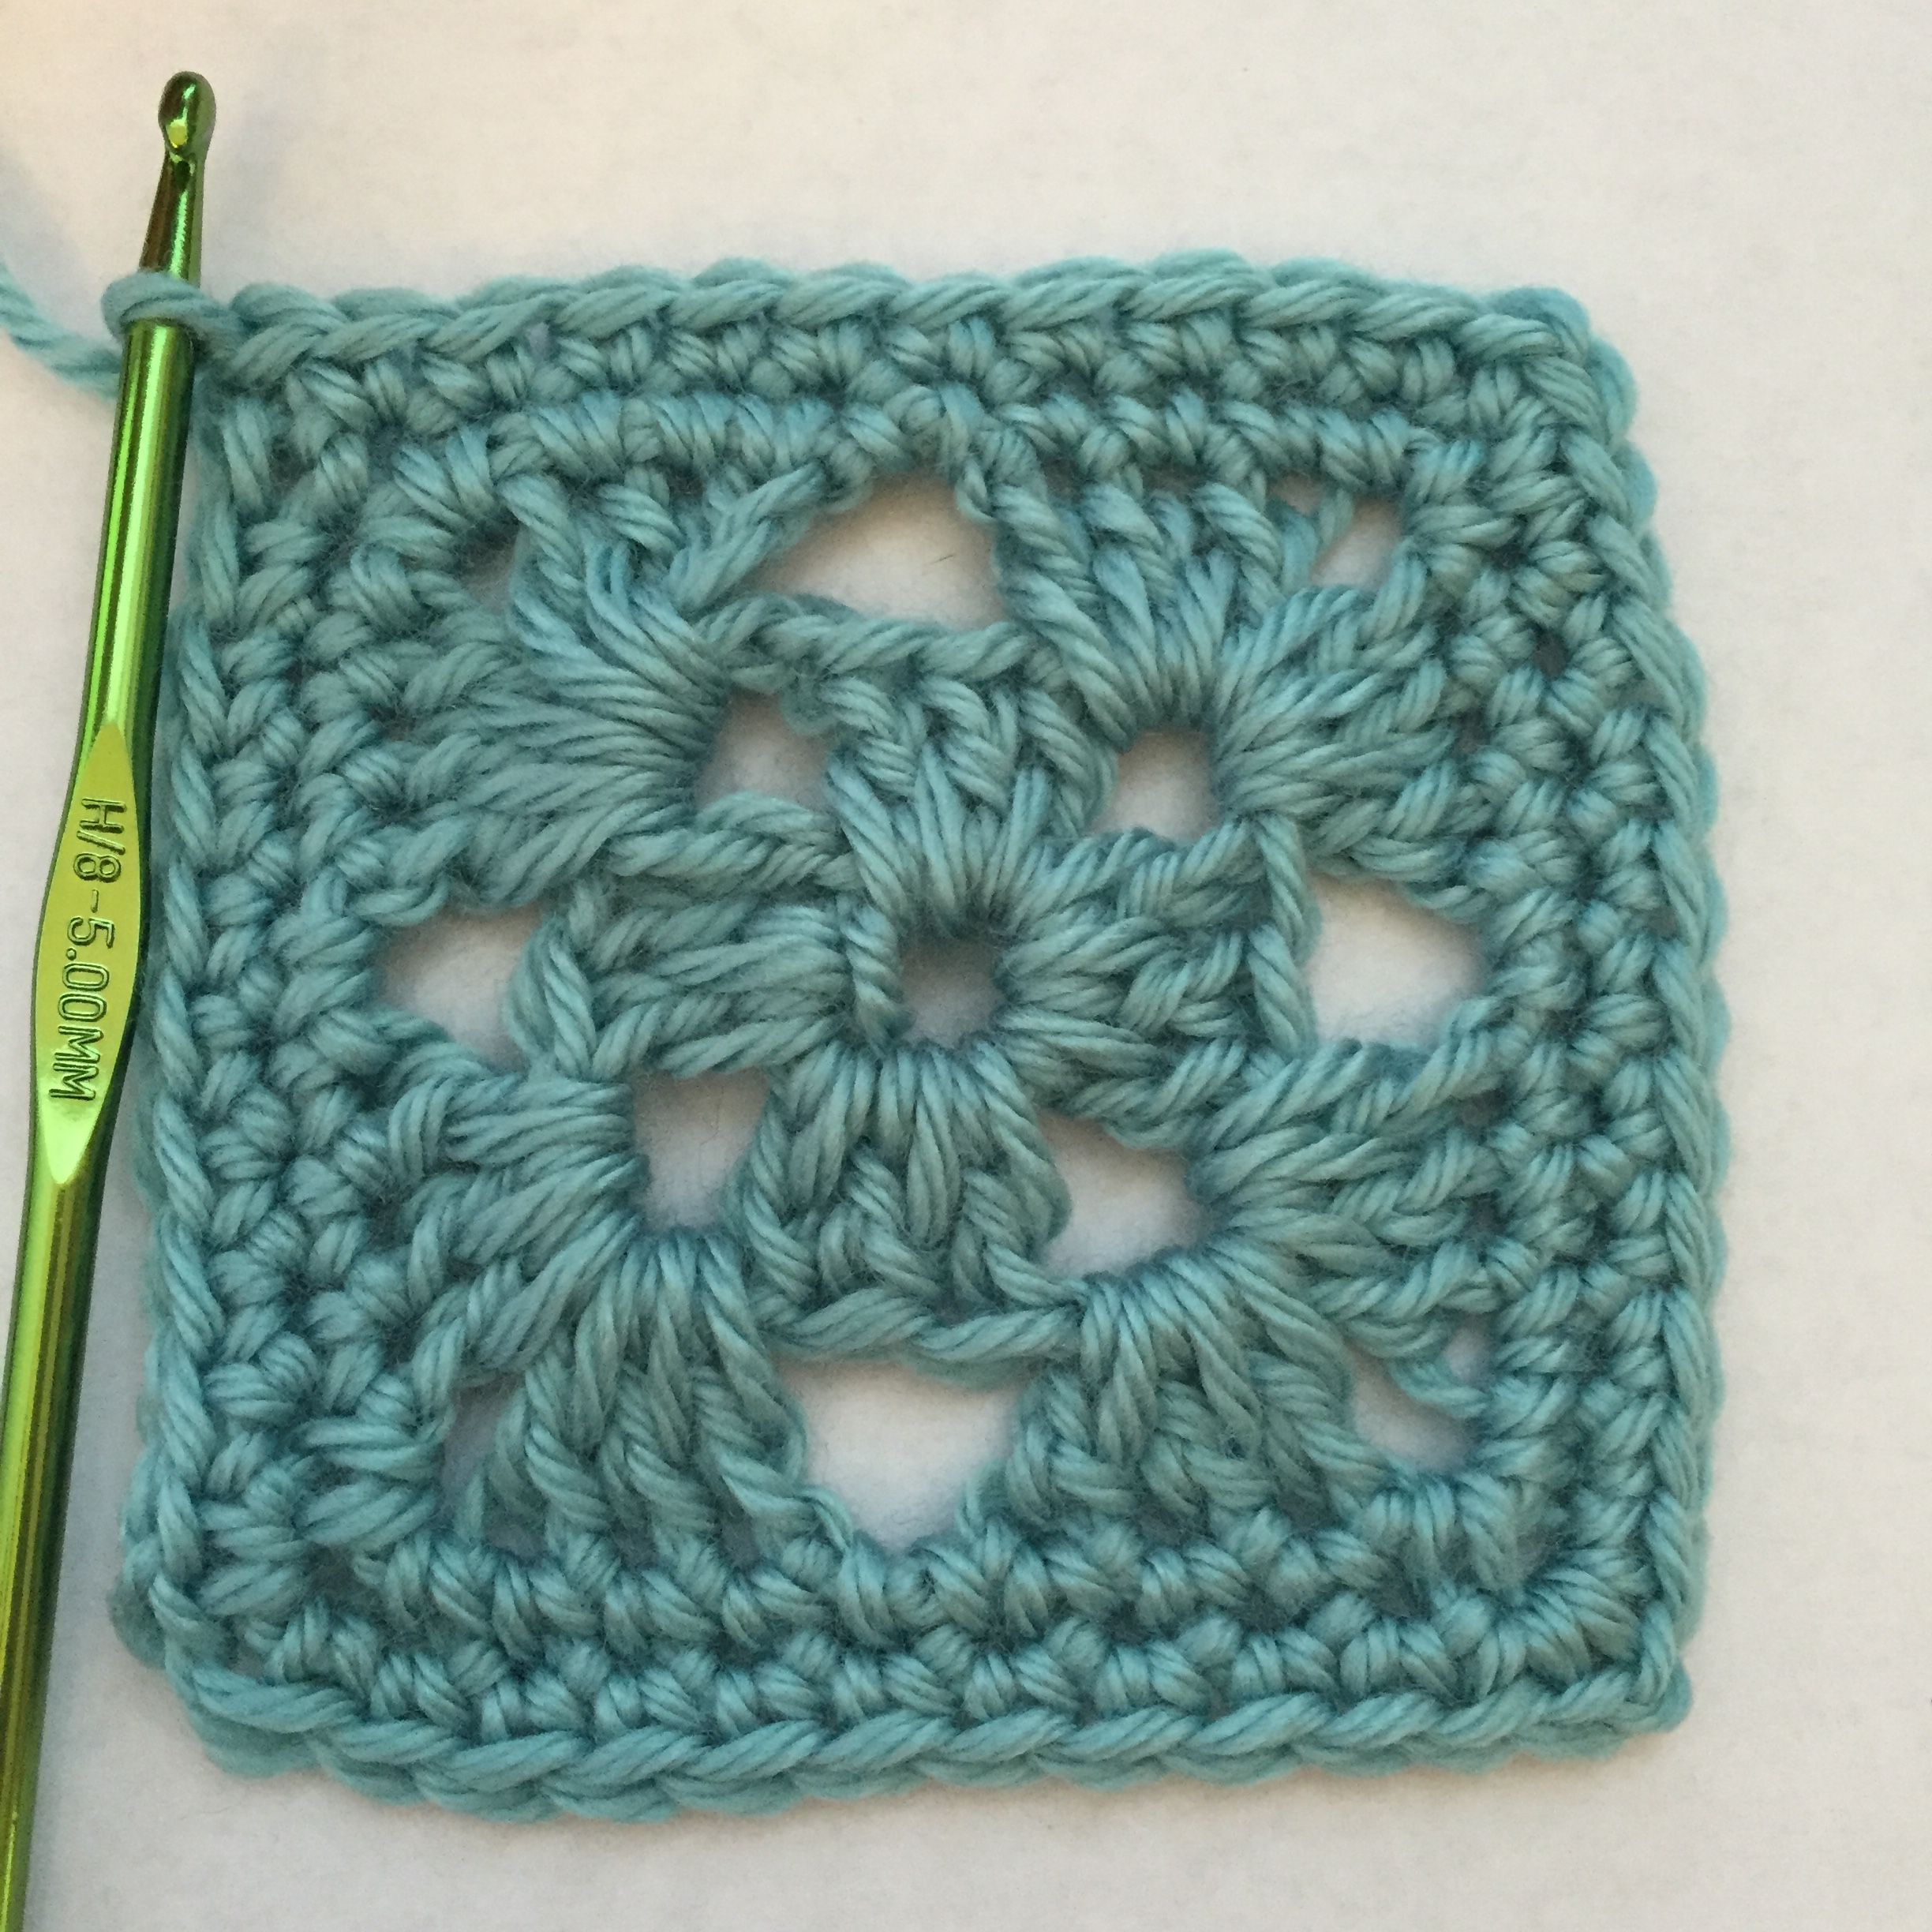 10 free ripple crochet afghan patterns how to single crochet edging for afghans and more bankloansurffo Images